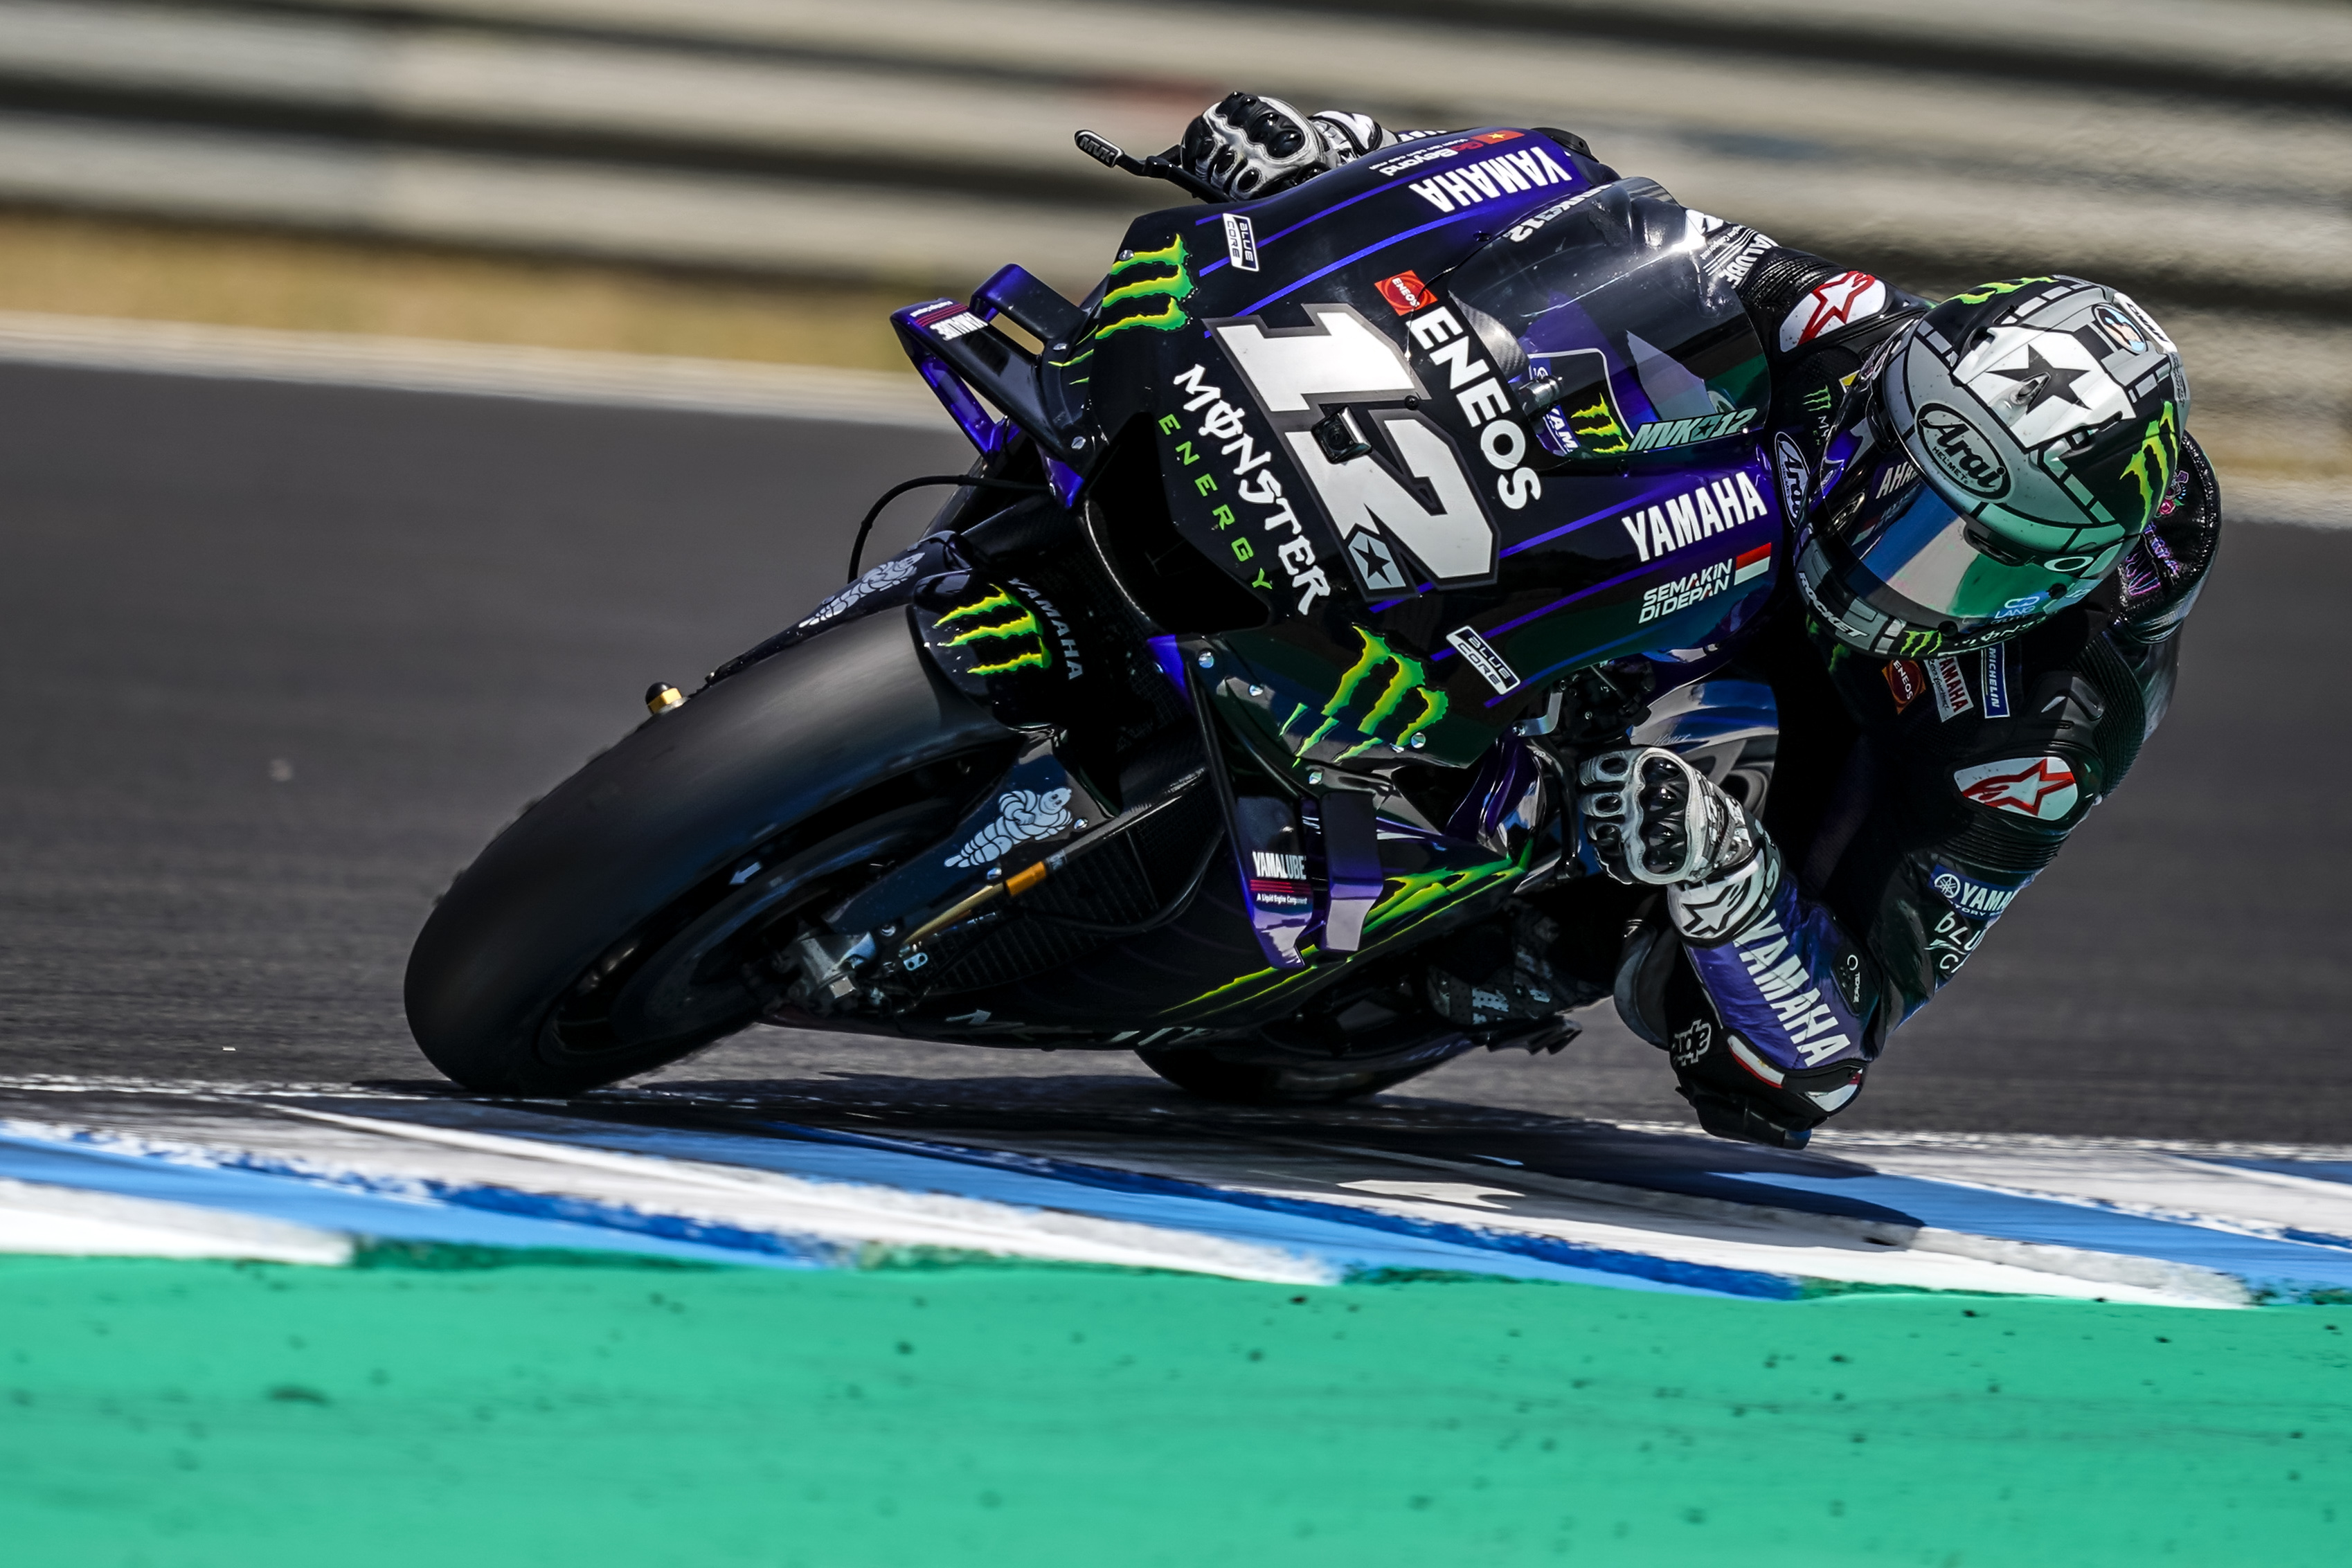 axalta-cromax-and-monster-energy-yamaha-motogp-team-2019-maverick-viales